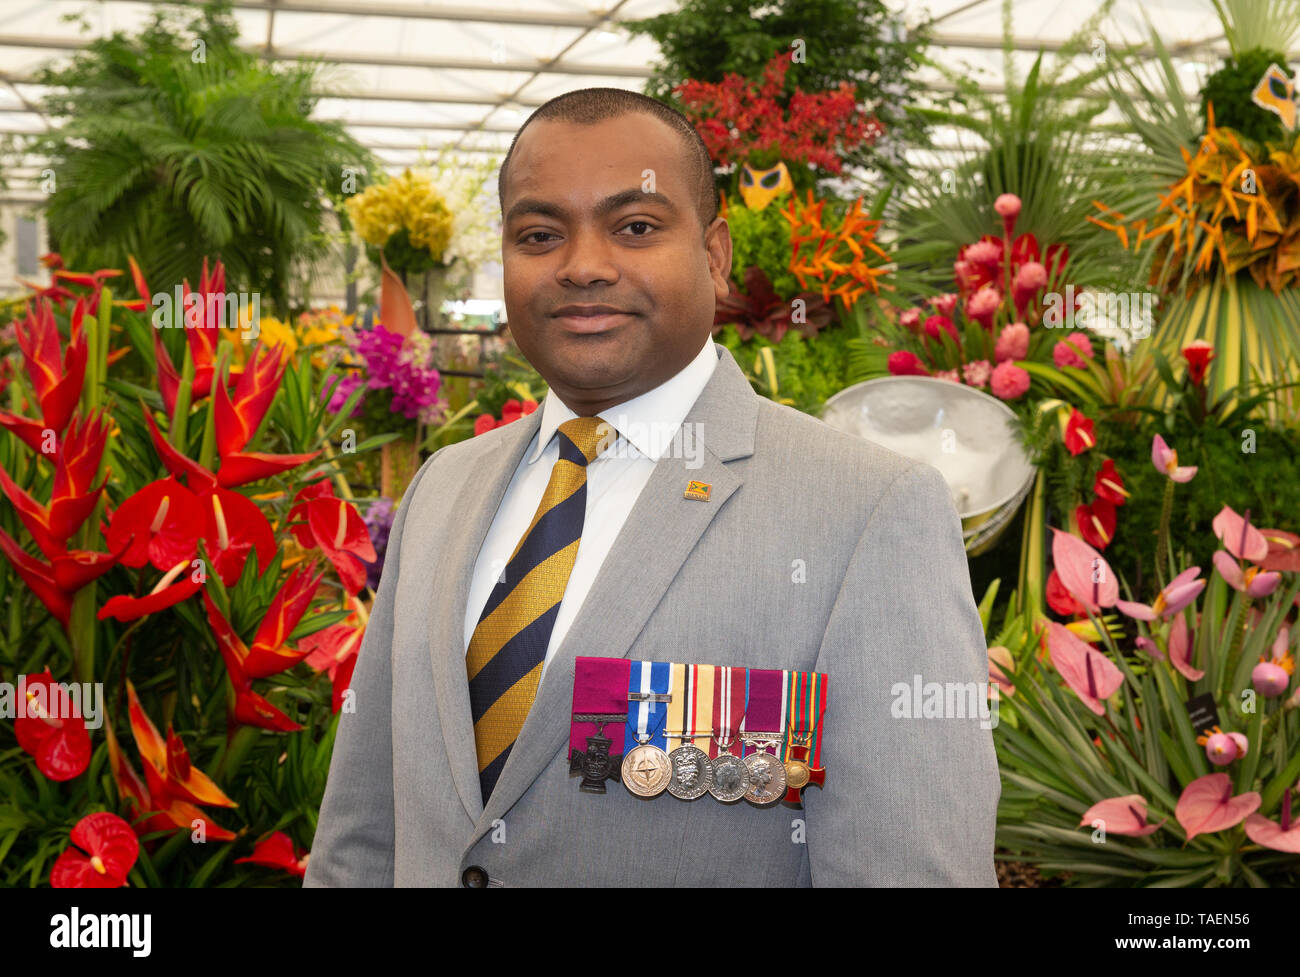 Lance Sergeant Johnson Beharry, VC, British Army soldier who, on 18 March 2005, was awarded the Victoria Cross at the Chelsea Flower Show. - Stock Image